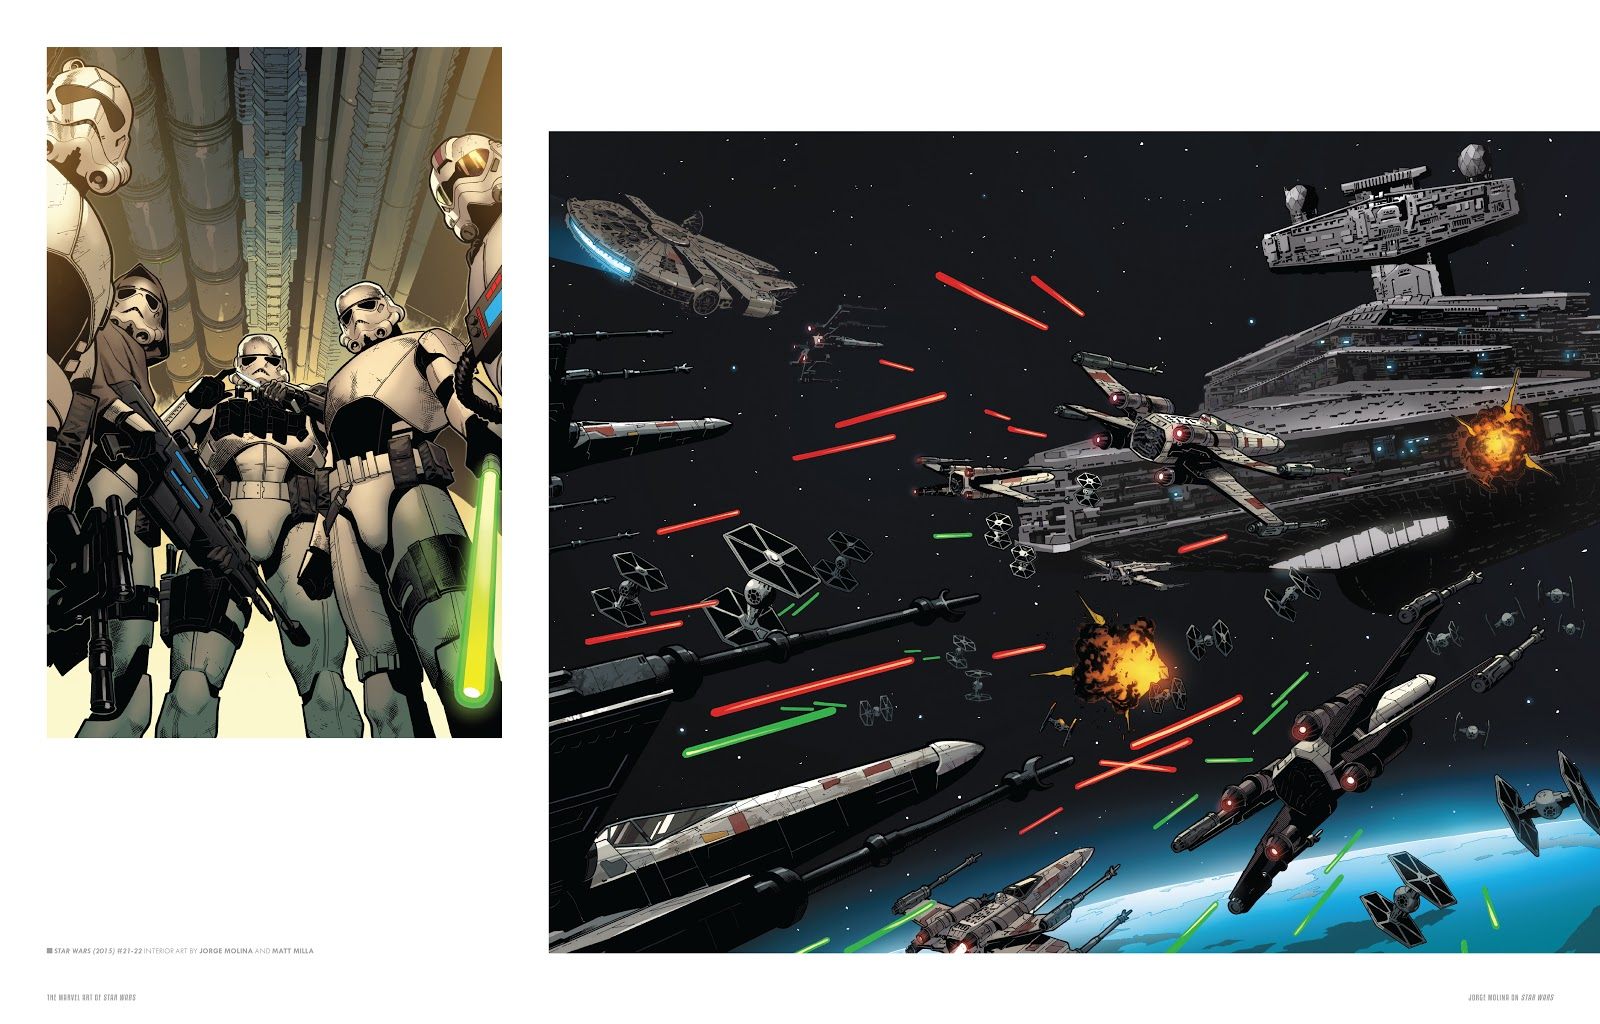 Read online The Marvel Art of Star Wars comic -  Issue # TPB (Part 2) - 2